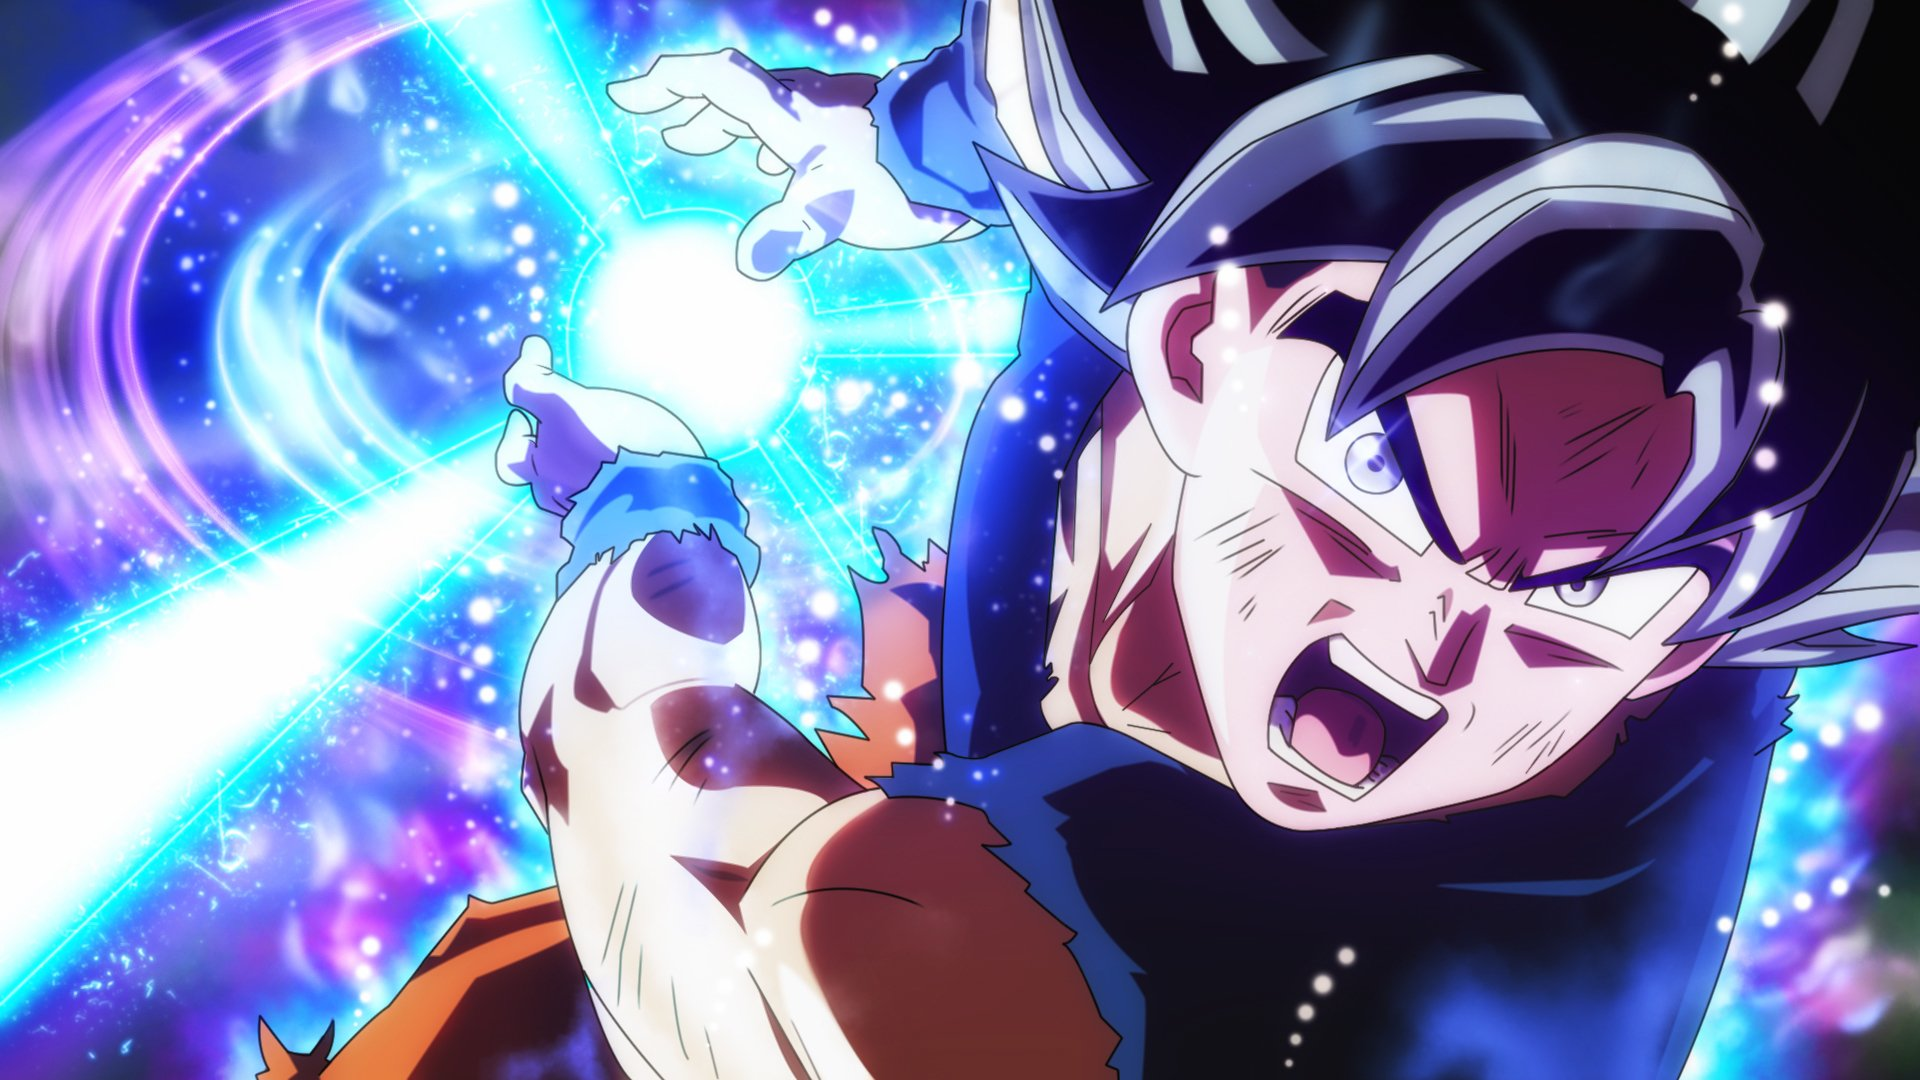 Goku Ultra Instinct Wallpaper 1080p: Ultra Instinct Goku Vs Kefla Universal Kamehameha HD